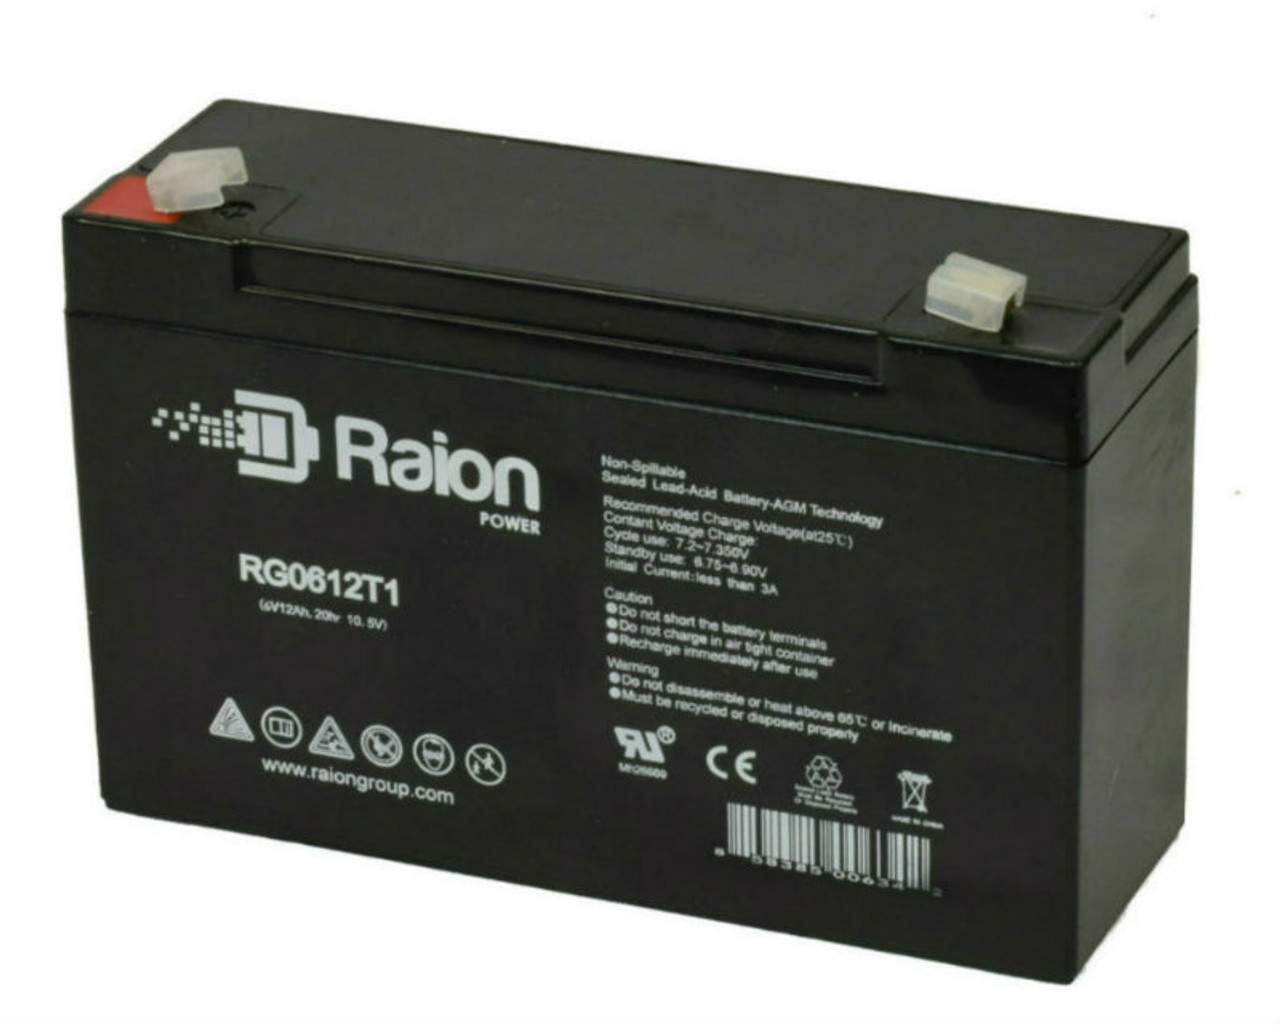 Raion Power RG06120T1 Replacement Battery Pack for Sonnenschein 6V10 emergency light